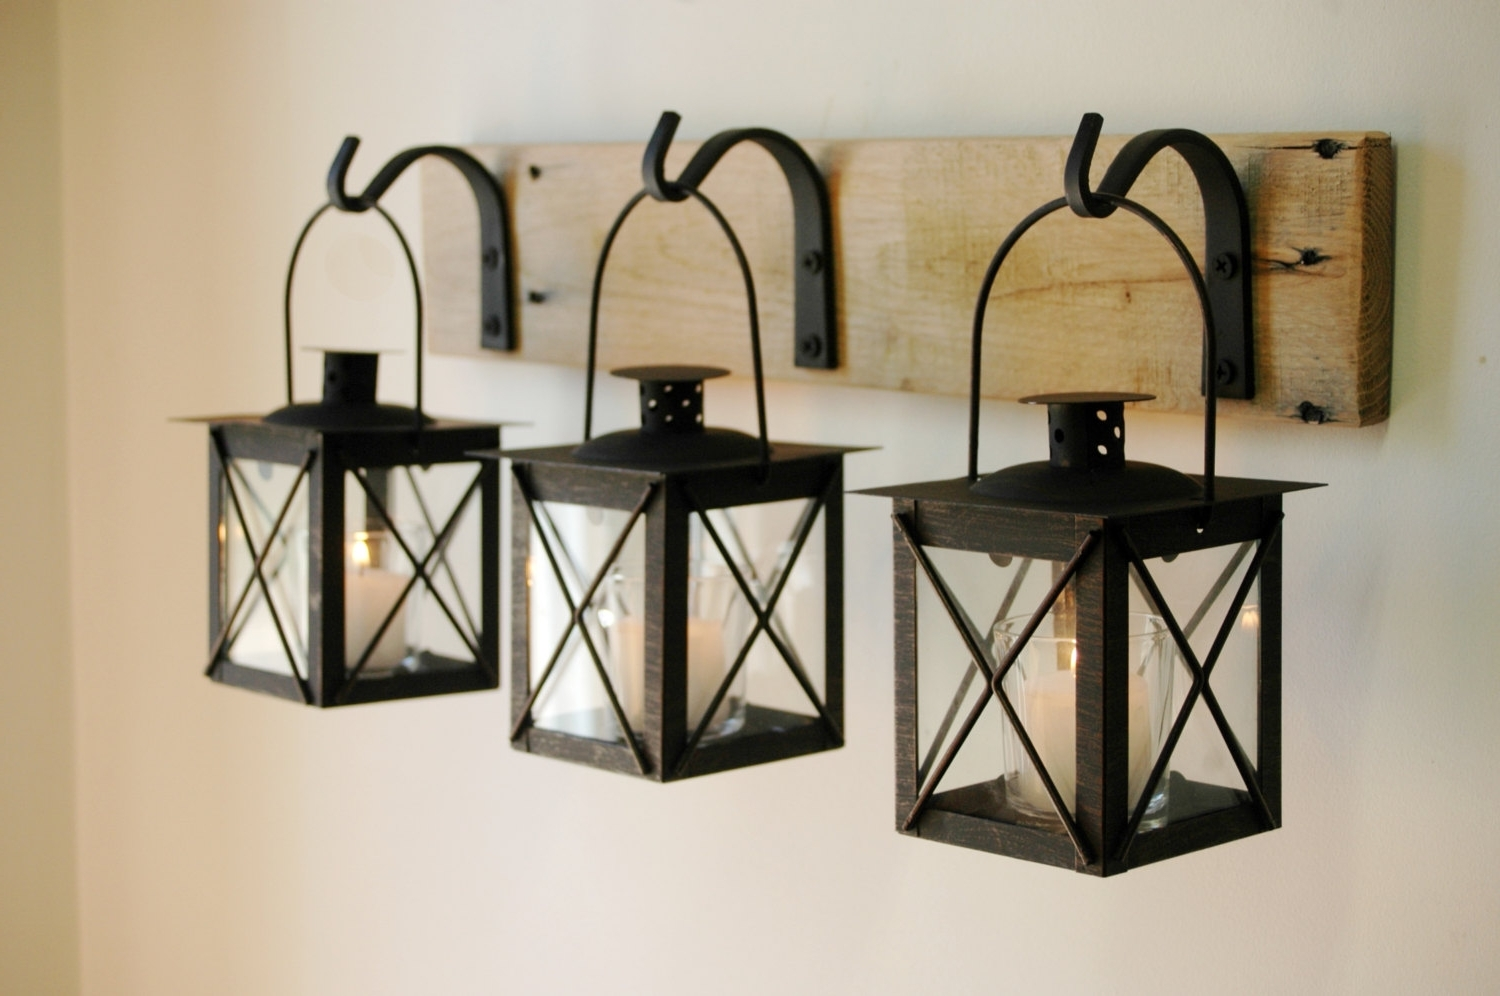 Benefit Of Wrought Iron Wall Decor — Charter Home Ideas Regarding Well Known Etsy Outdoor Lanterns (View 18 of 20)